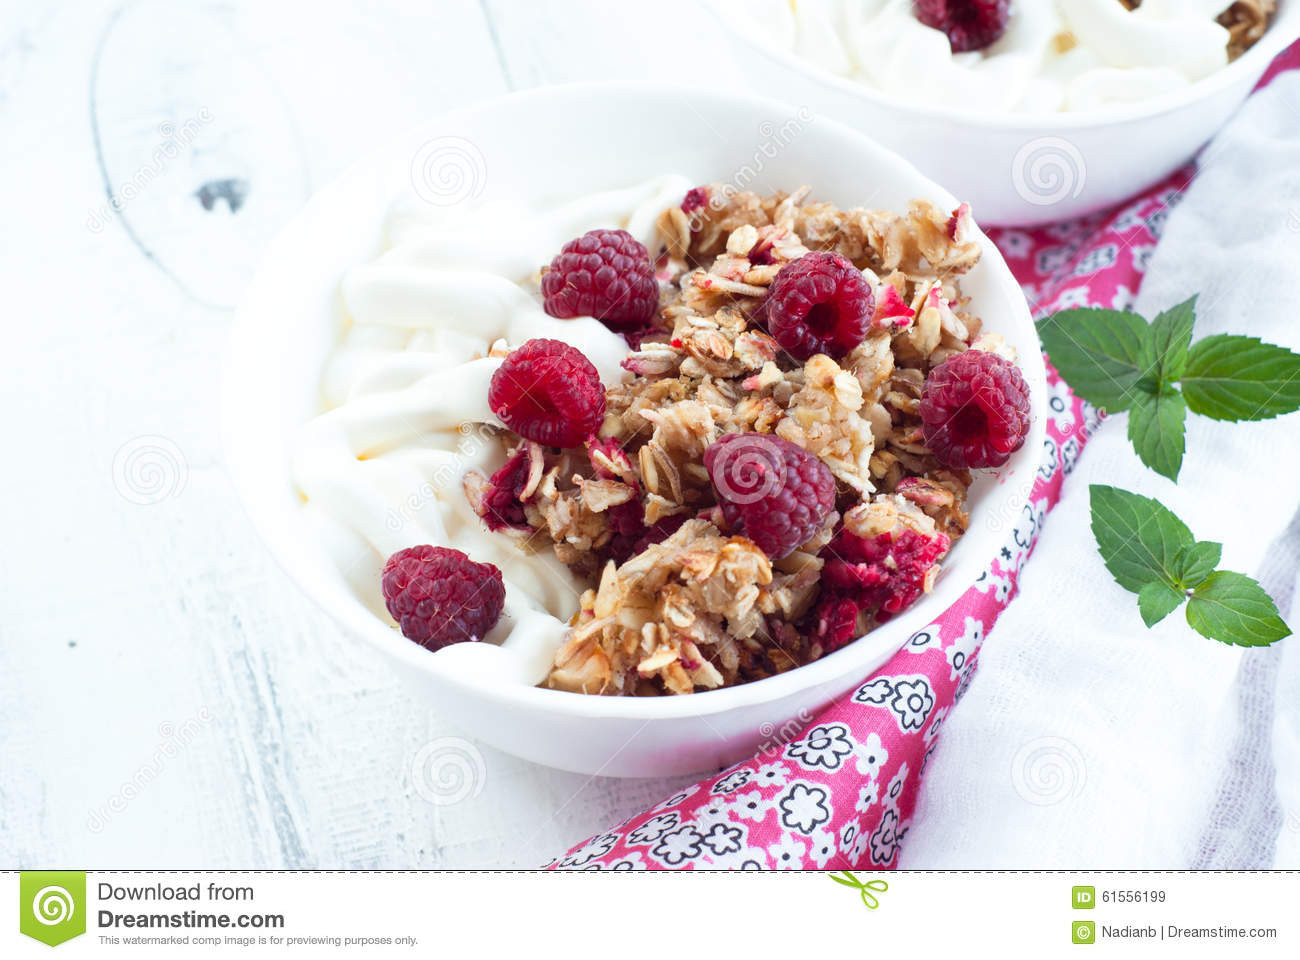 Healthy Snacks With Cream Cheese  Healthy Snack With Sour Cream And Granola Stock